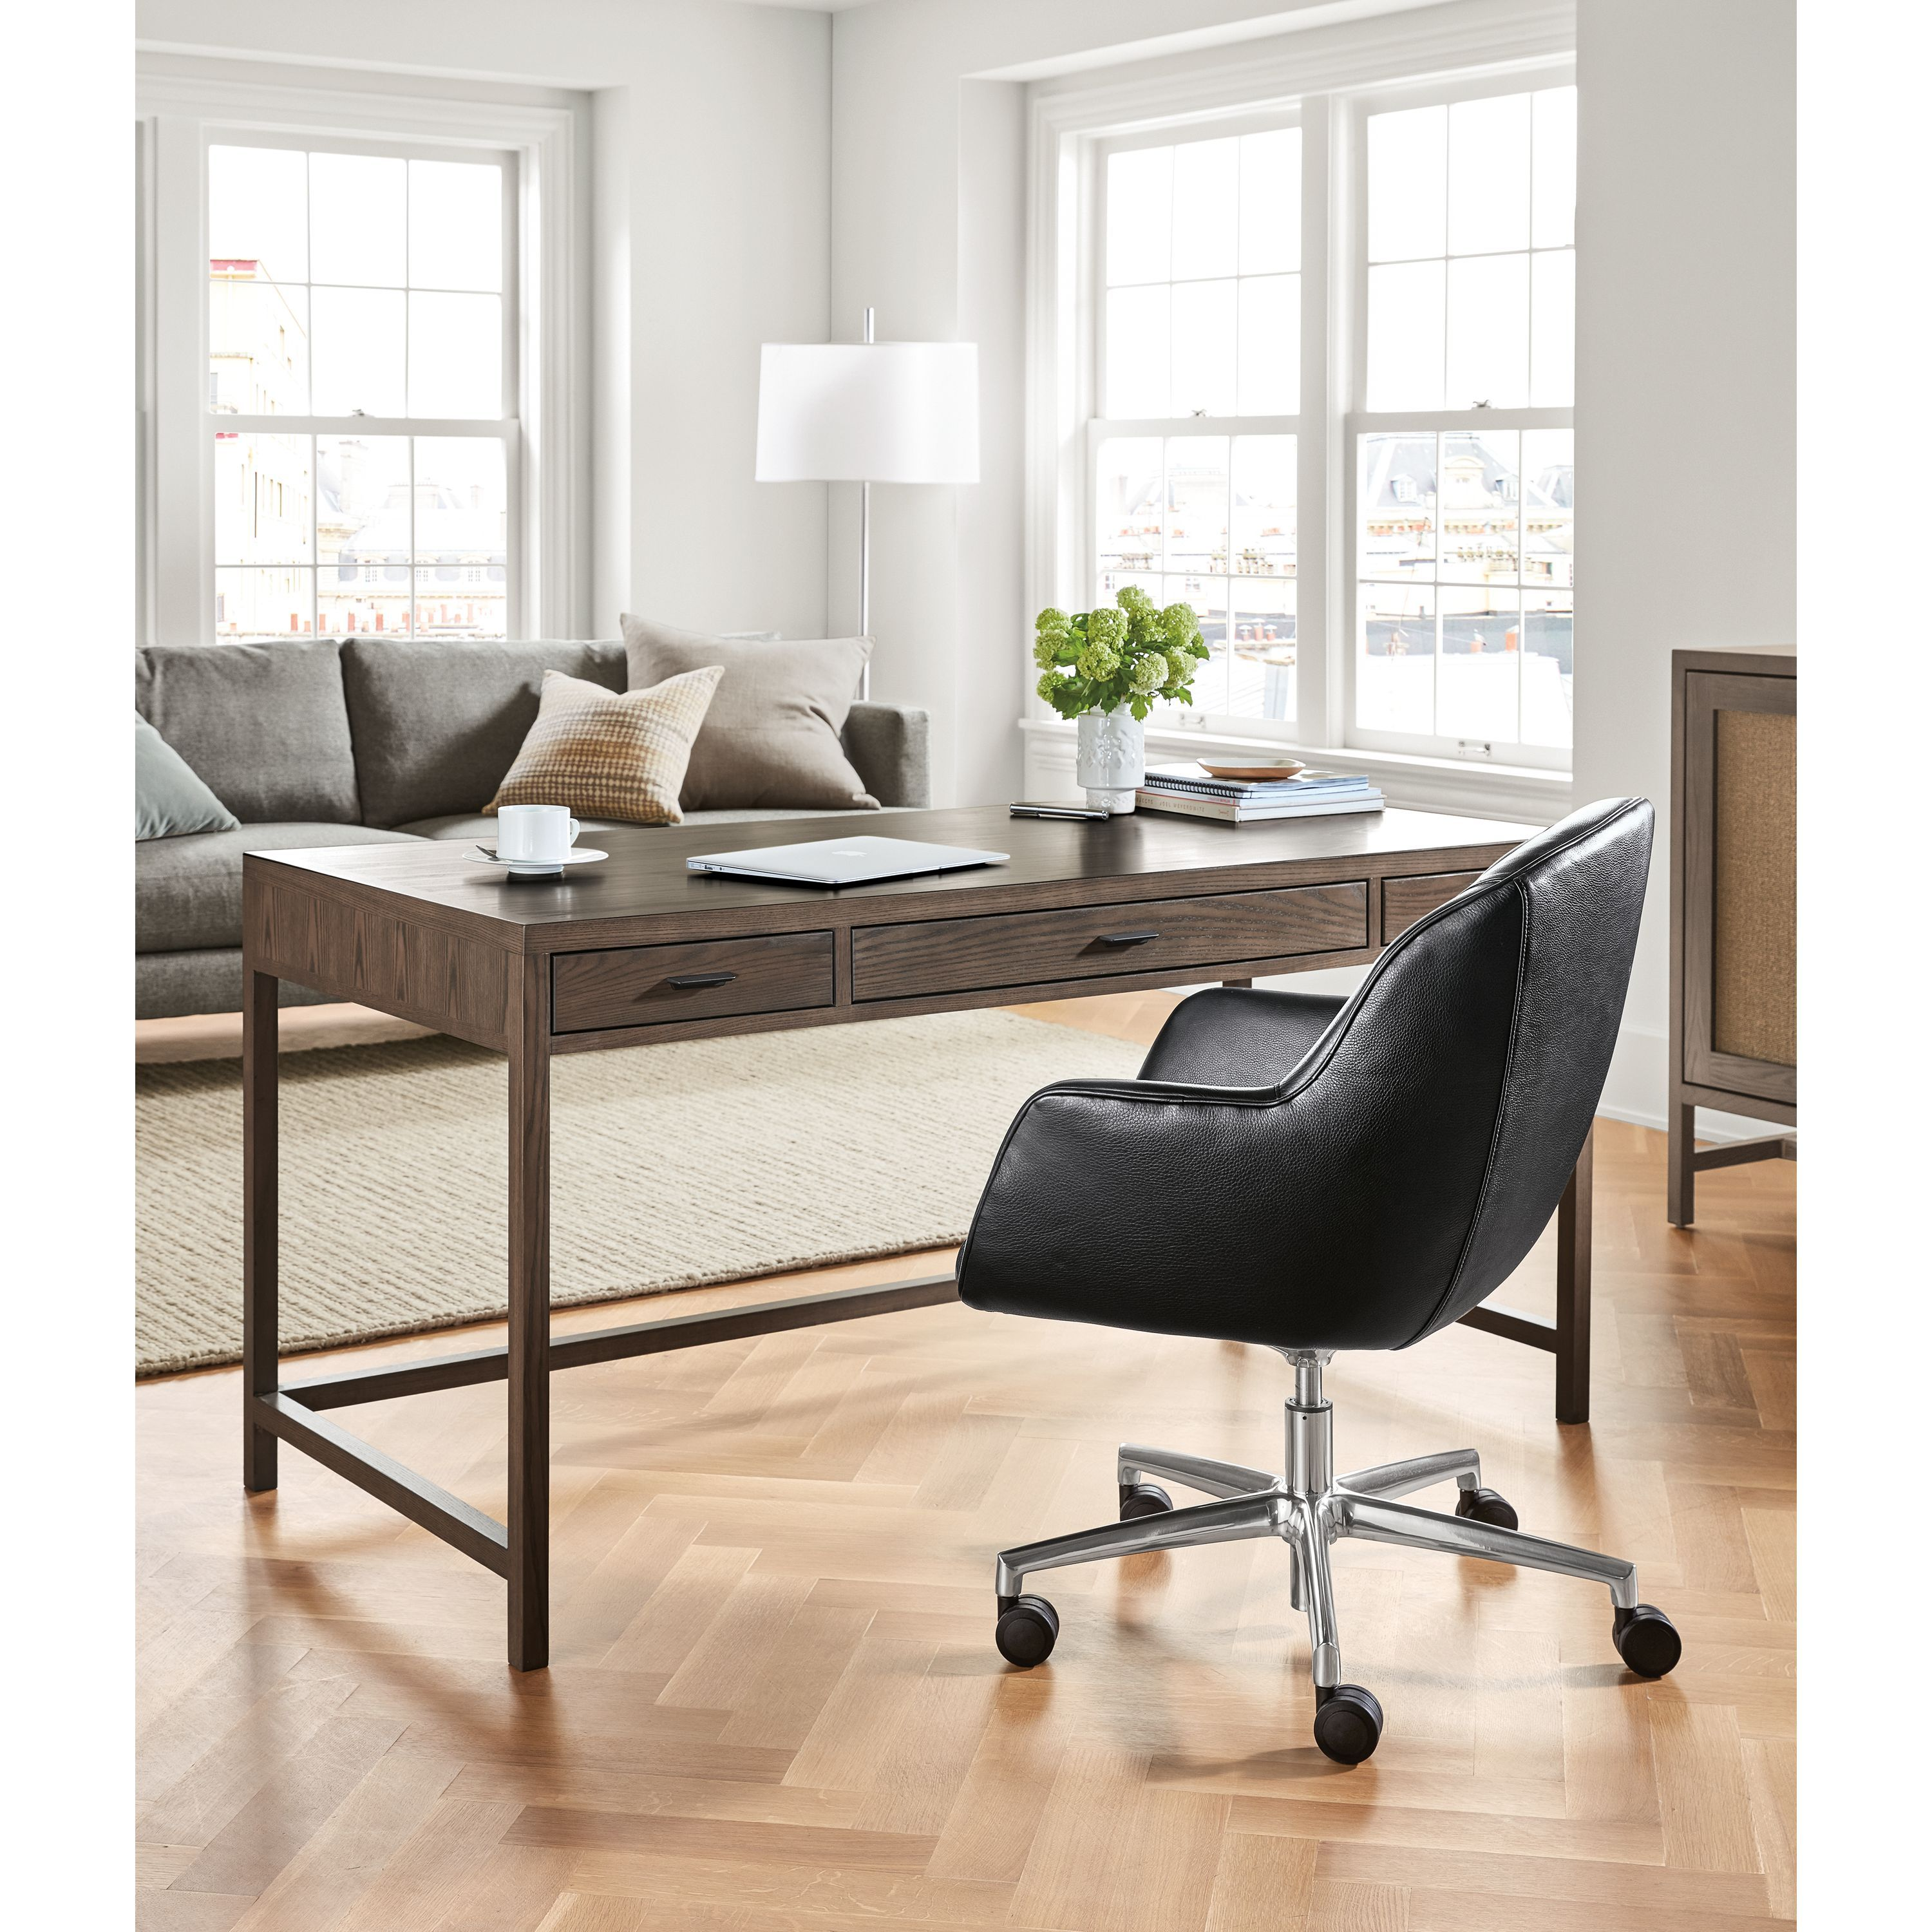 Berkeley Desks Modern Desks Tables Modern Office Furniture Room Board Modern Office Chair Office Furniture Modern Modern Furniture Living Room